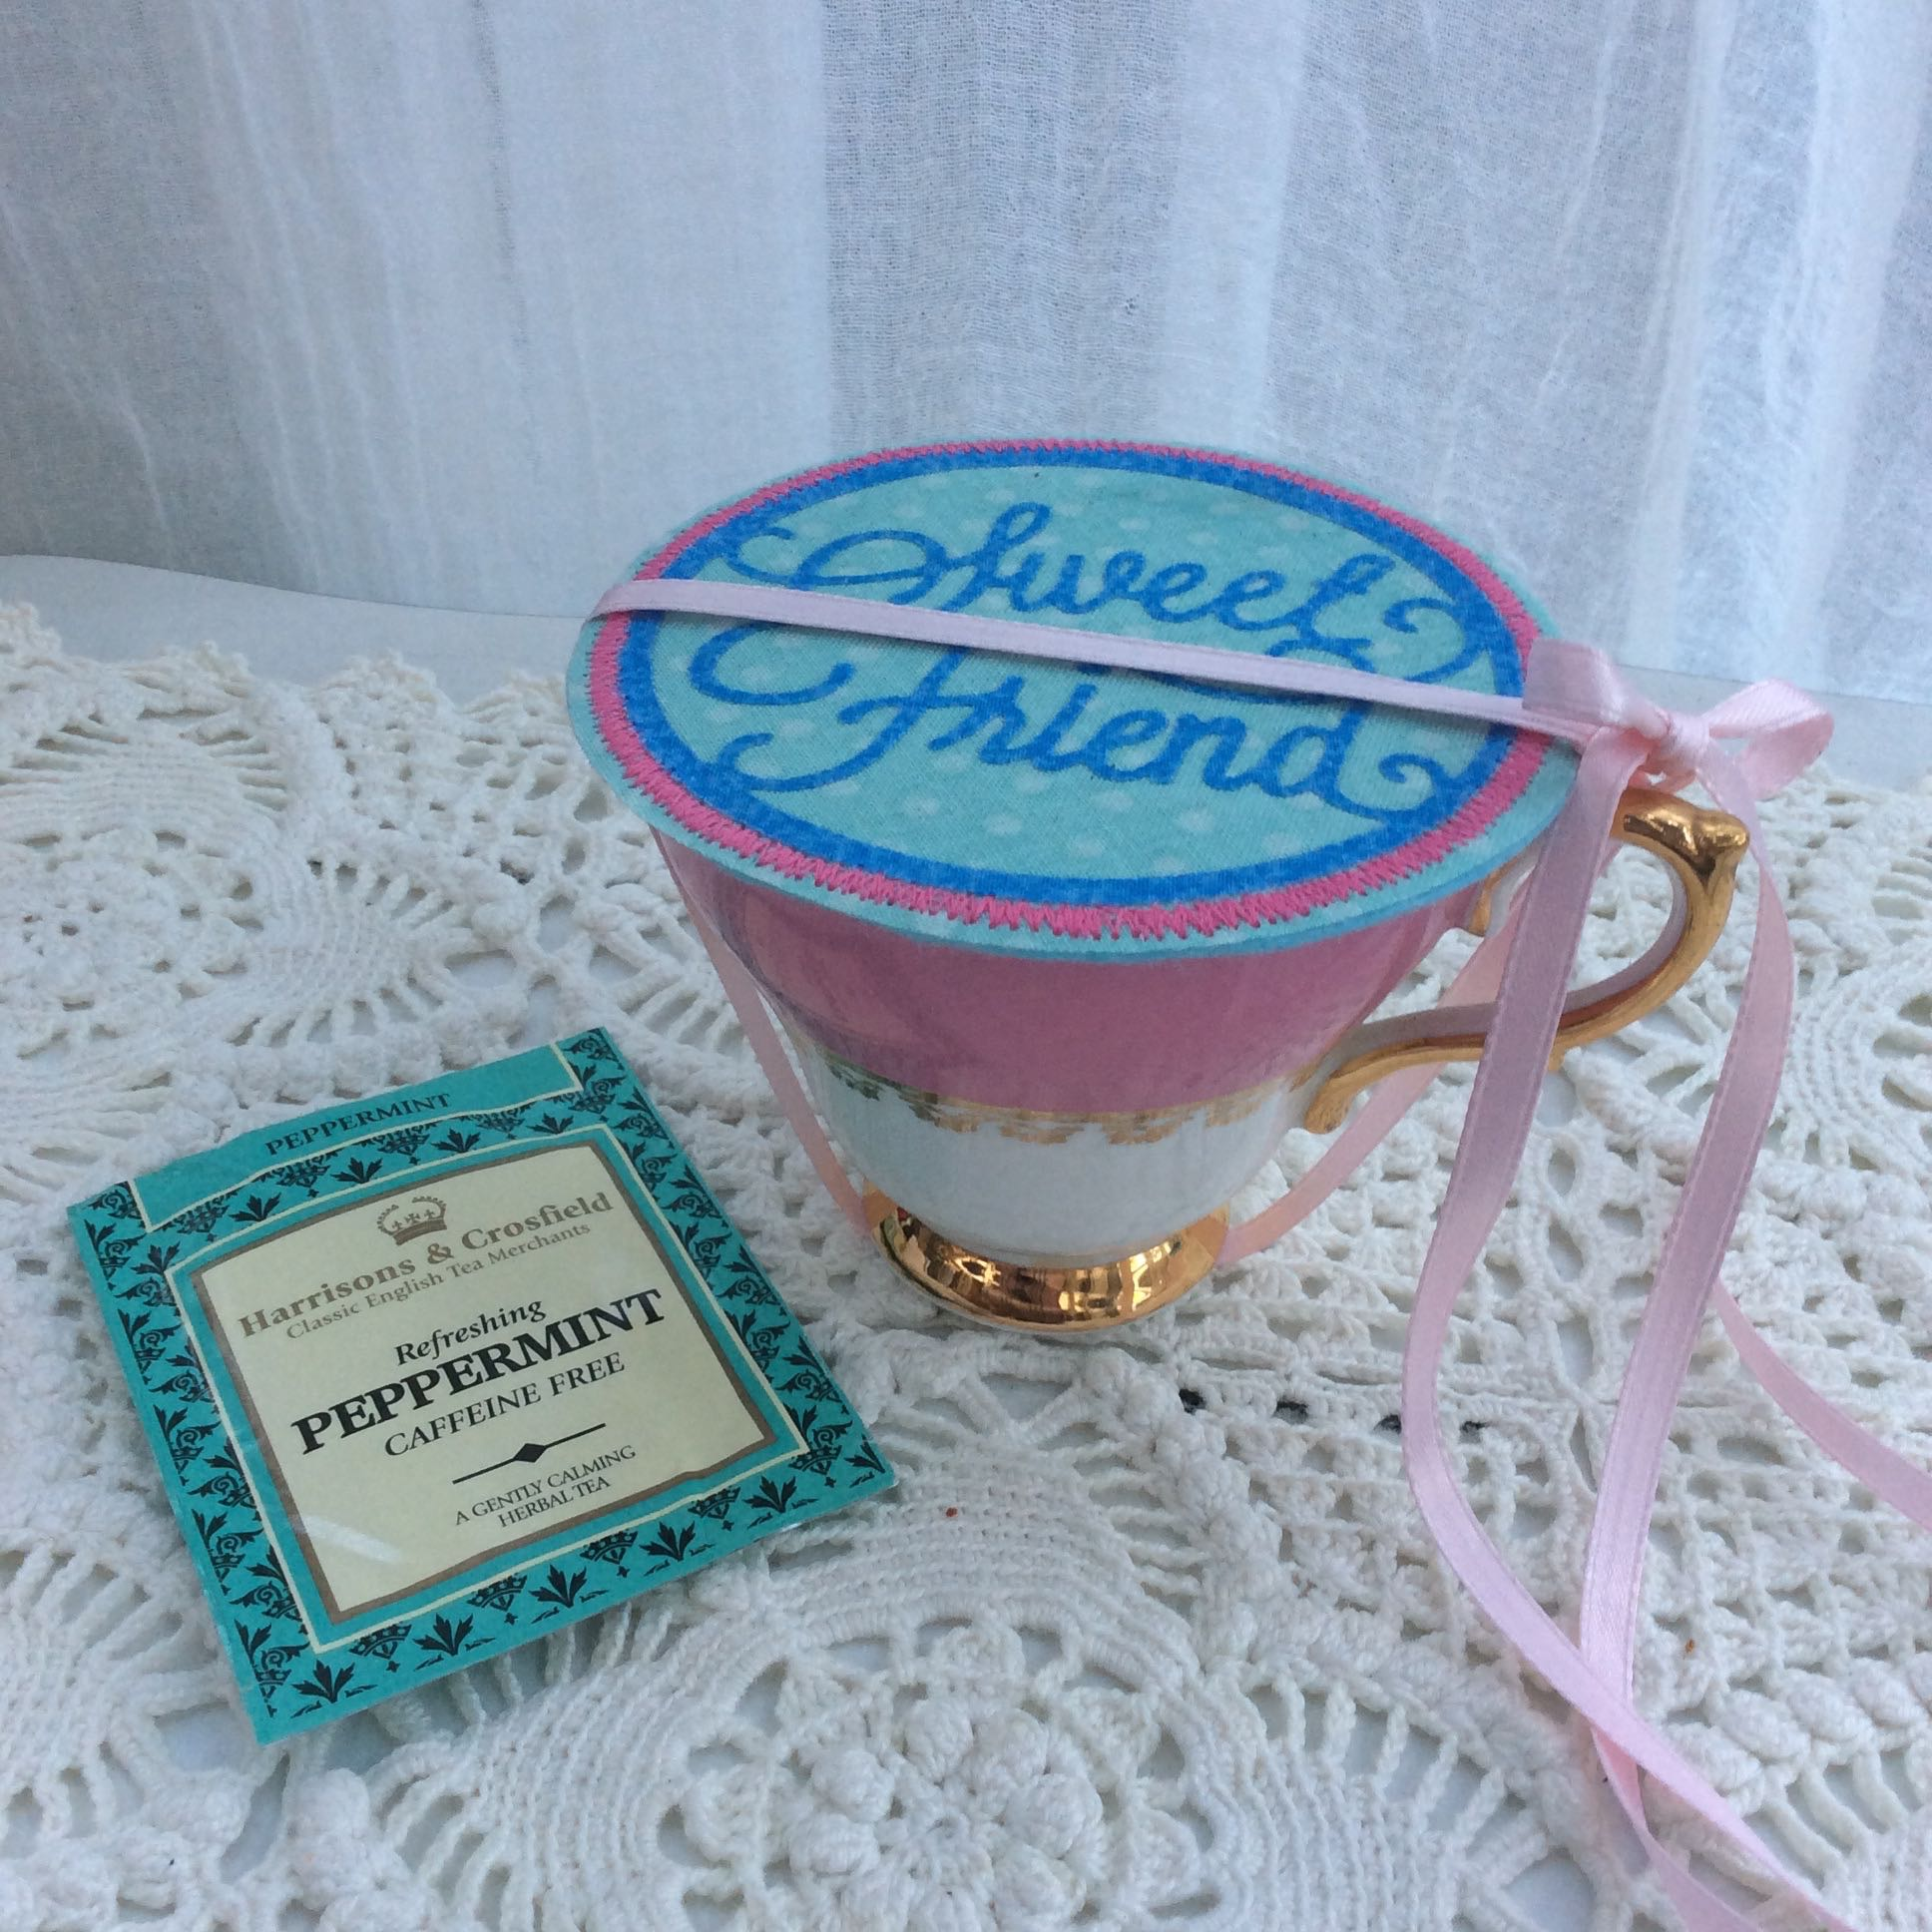 Diy Teacup Crafts Handmade Gifts For Friends Cheap Eats And